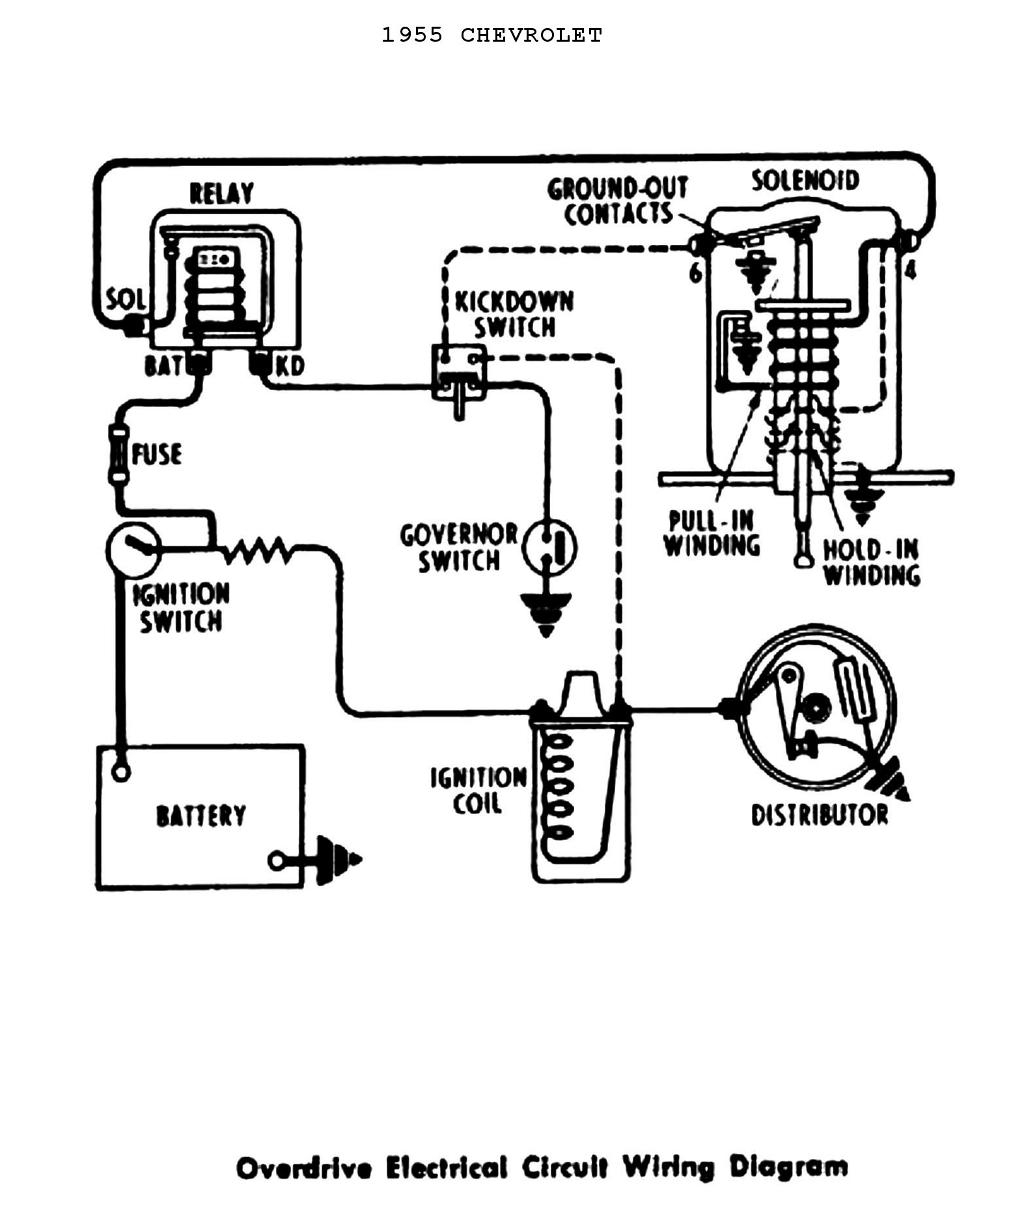 gm hei distributor wiring schematic | free wiring diagram hei ignition wiring diagram msd chevy hei ignition wiring diagram #10